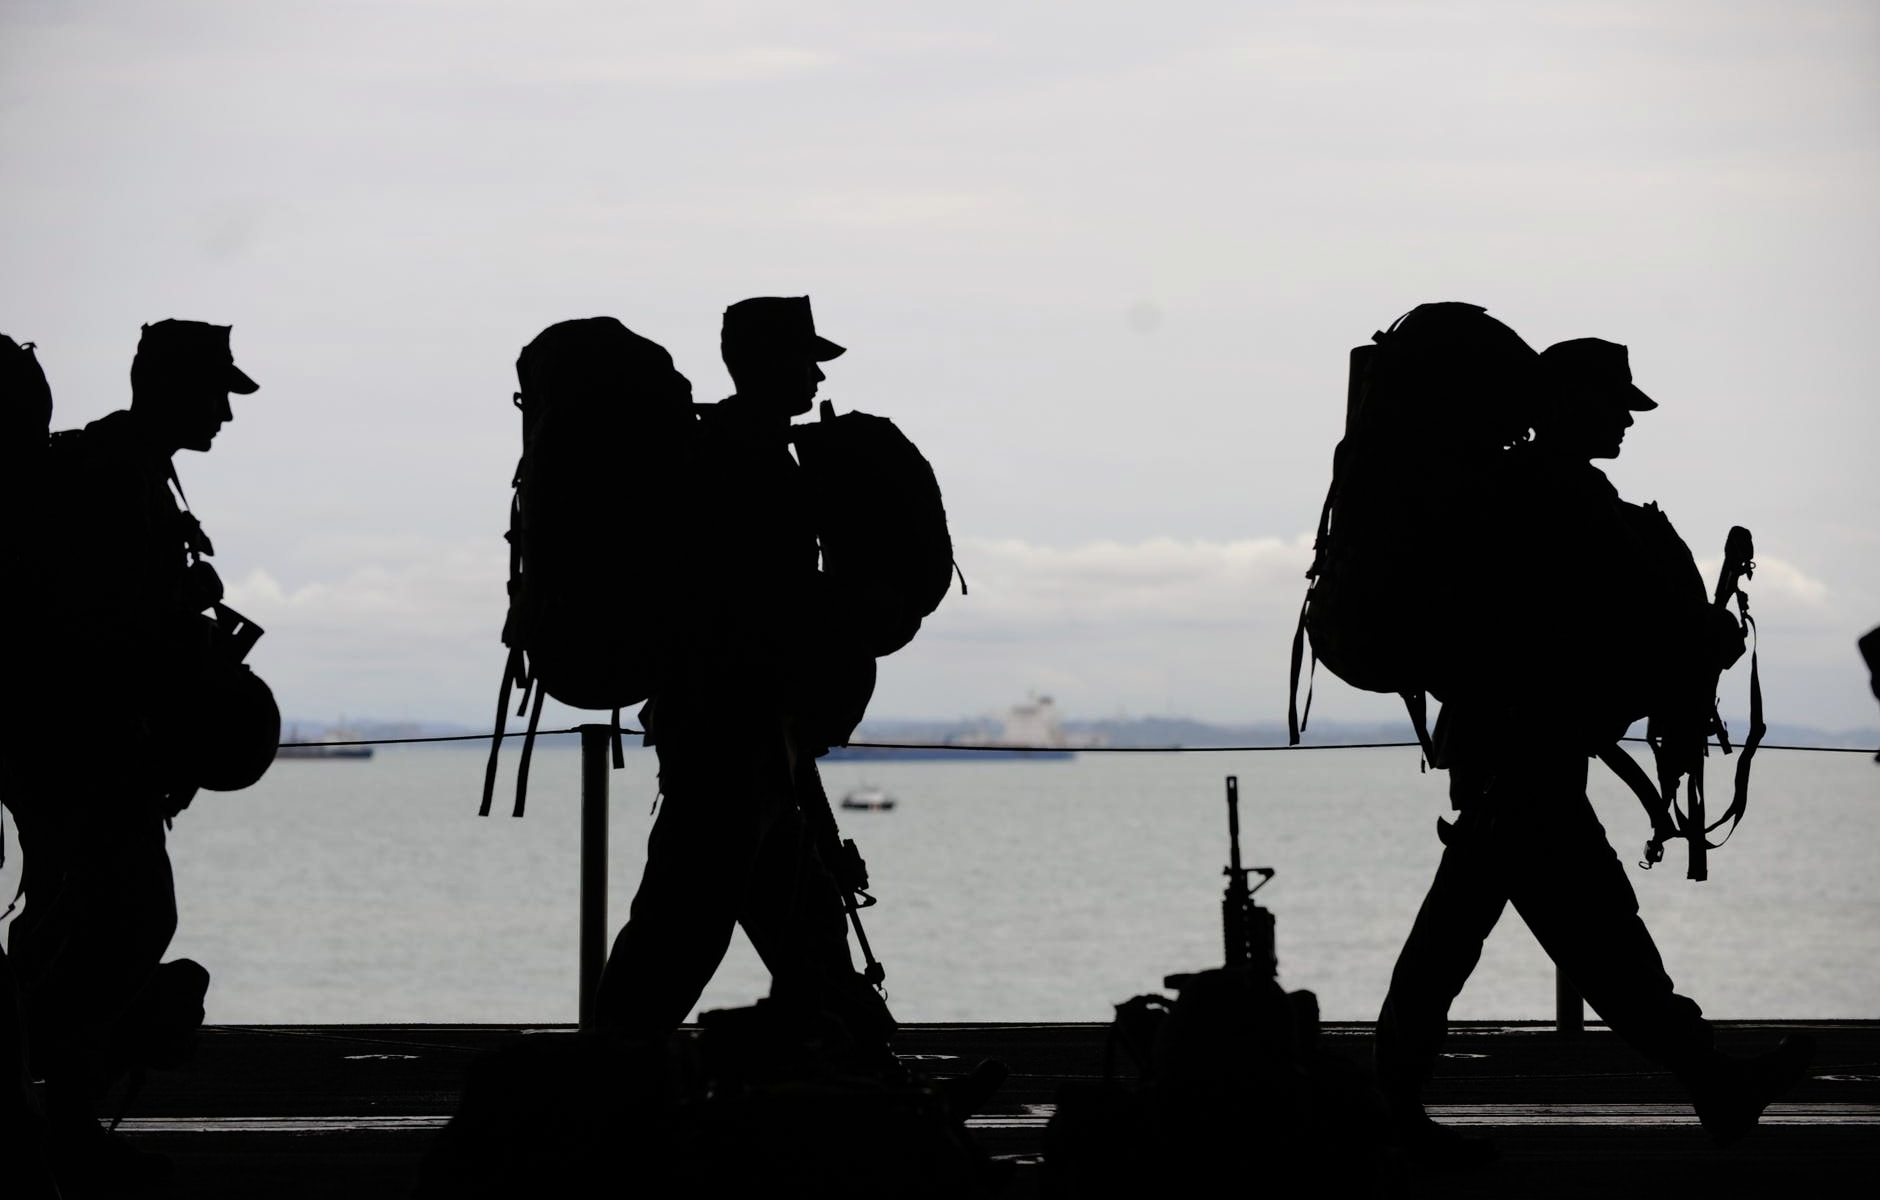 Silhouette of soldiers marching with gear with open water and land in background